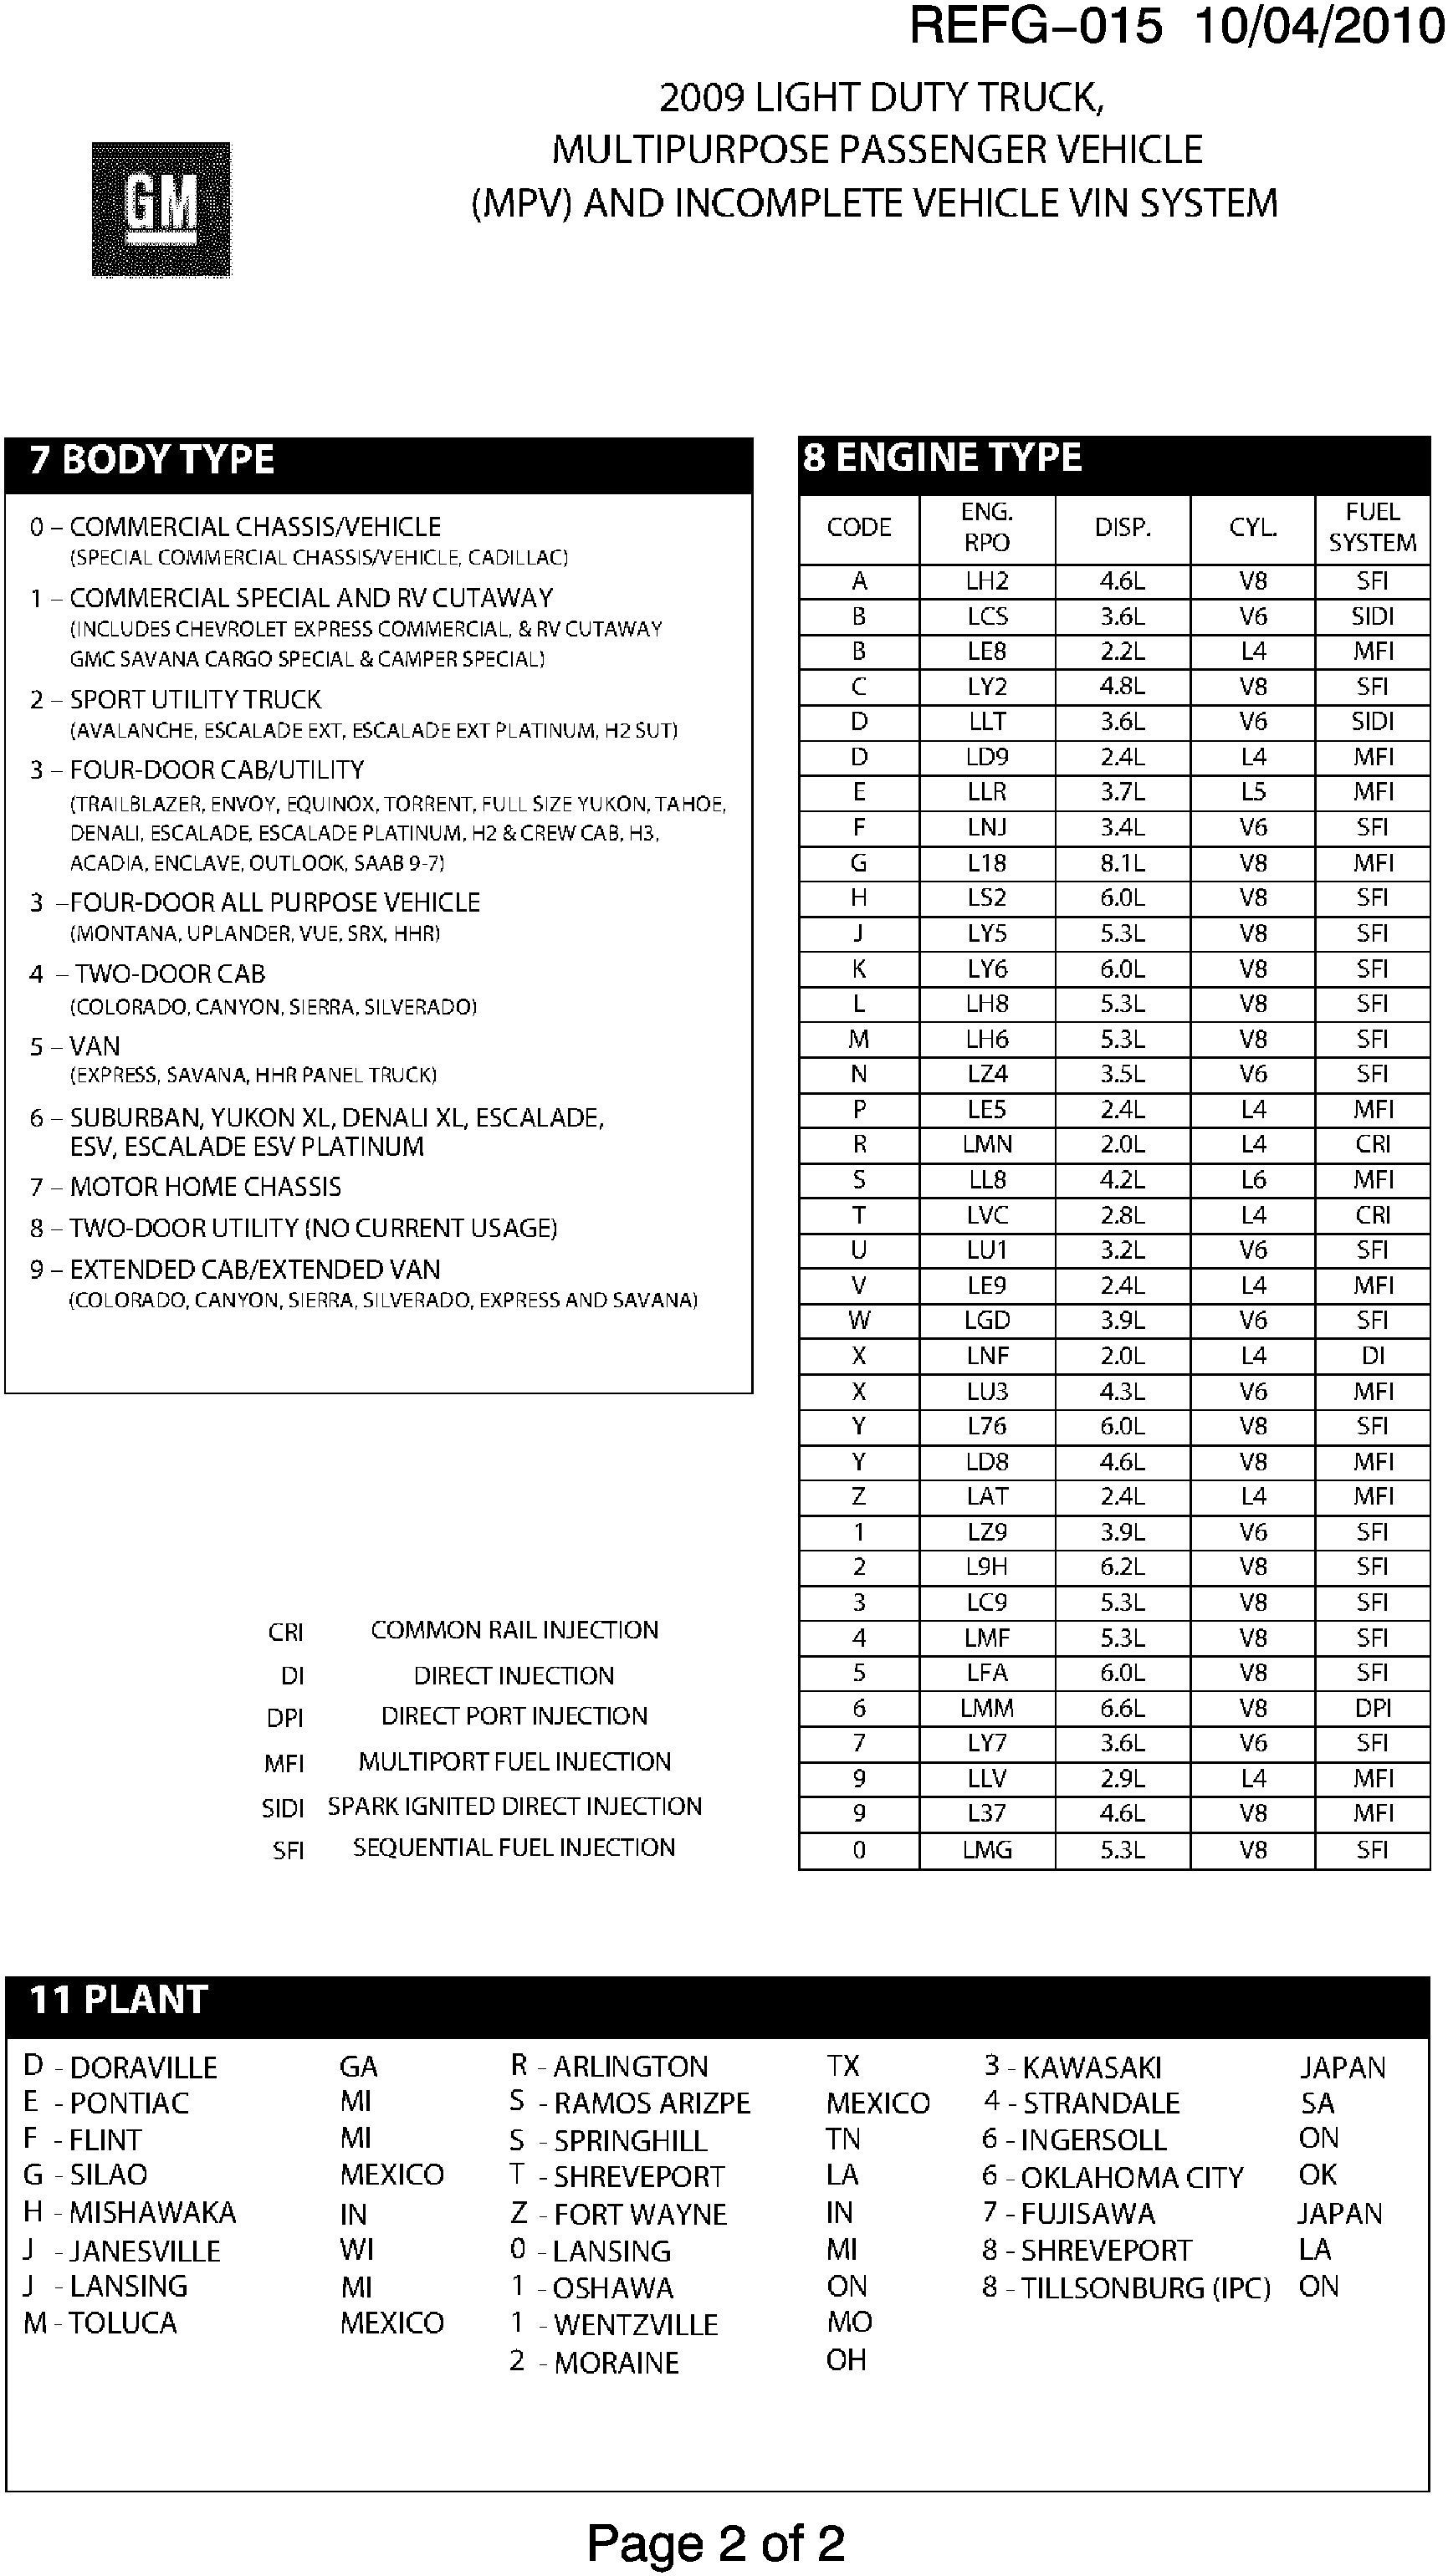 Buick Enclave (AWD) - RV1 VEHICLE IDENTIFICATION NUMBERING